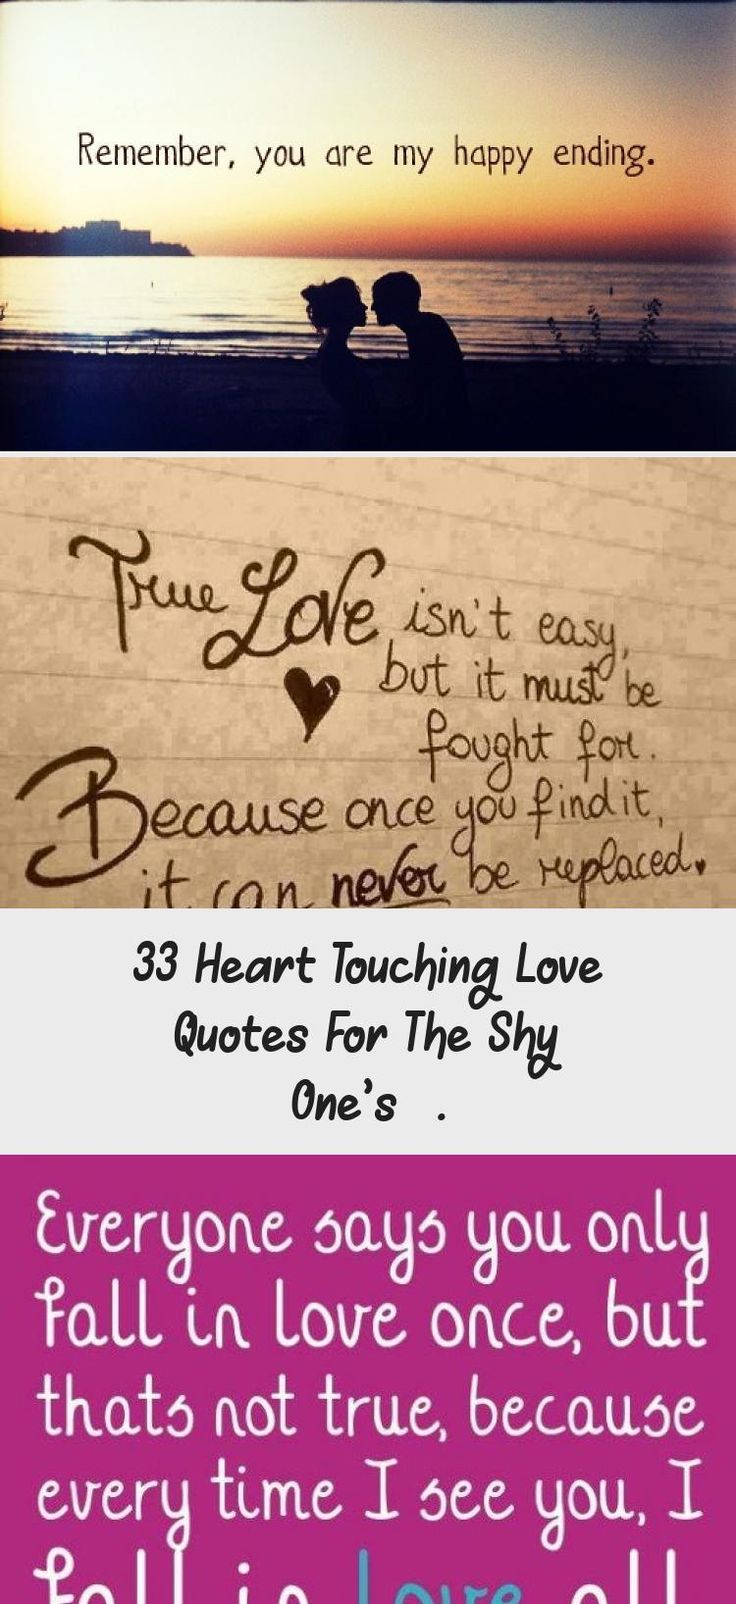 cute love quotes for him from the heart - Google Search # ... Google Love Quotes For Him